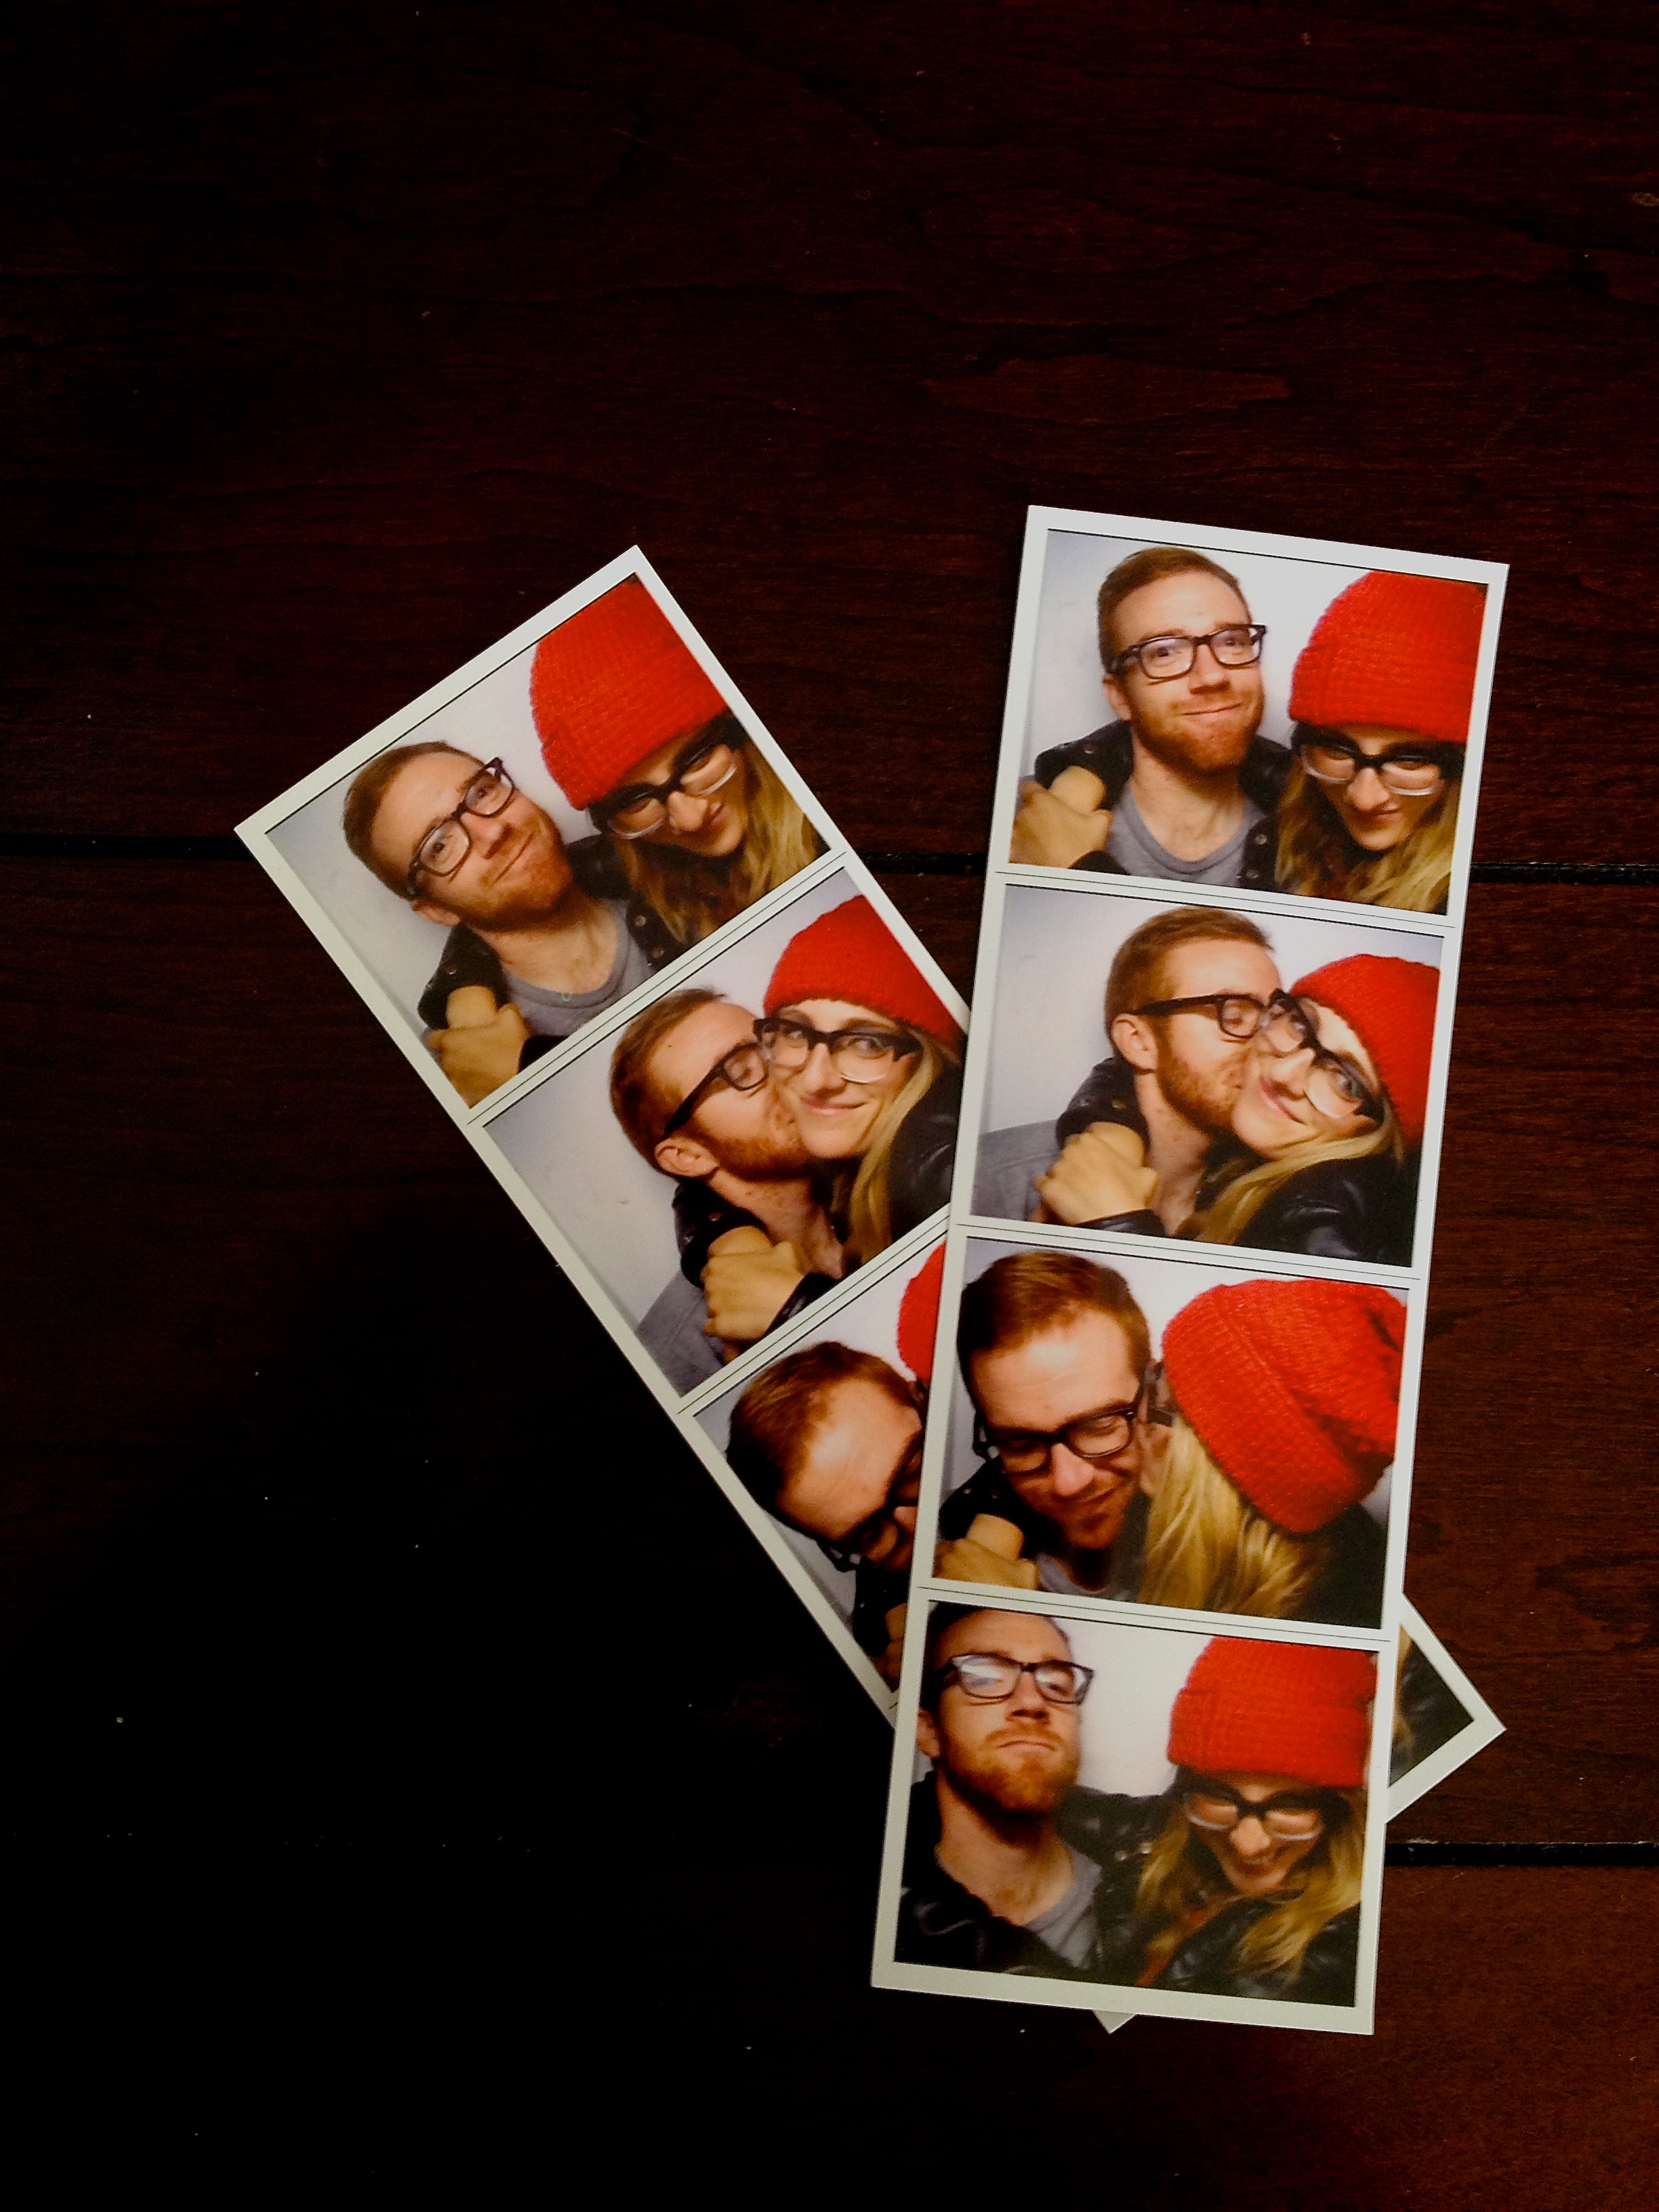 Who doesn't love a good photo booth session?